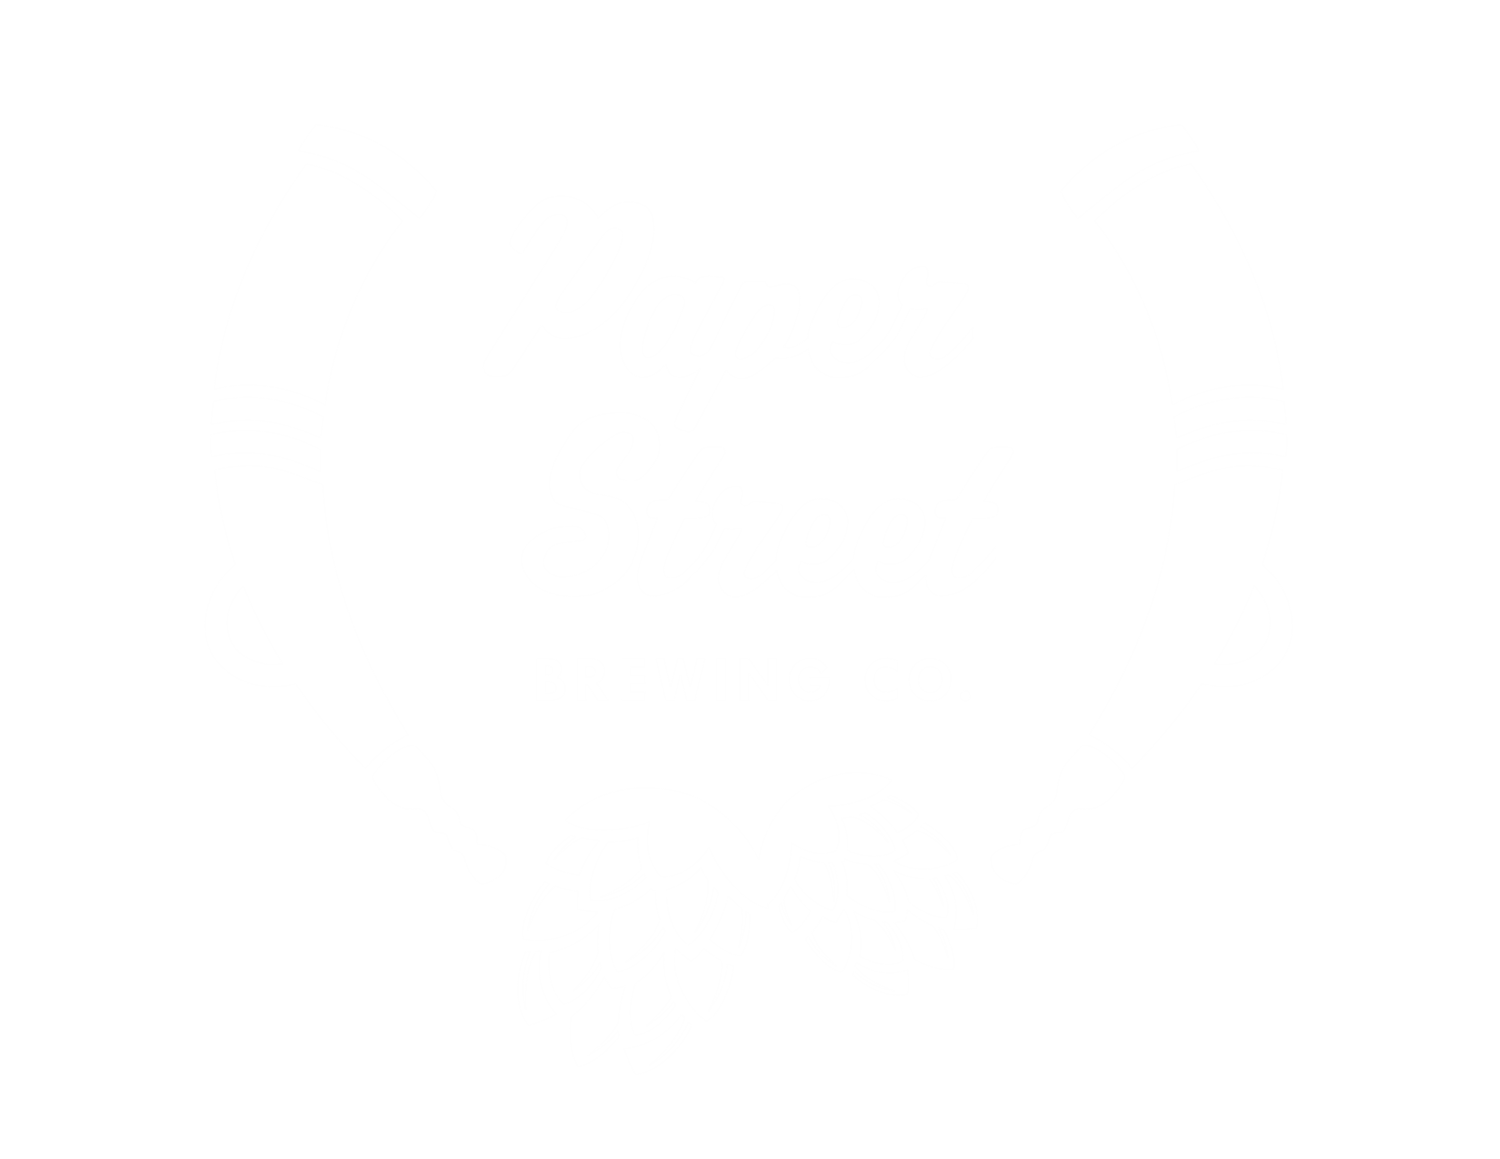 Paper Street Brewing Co.